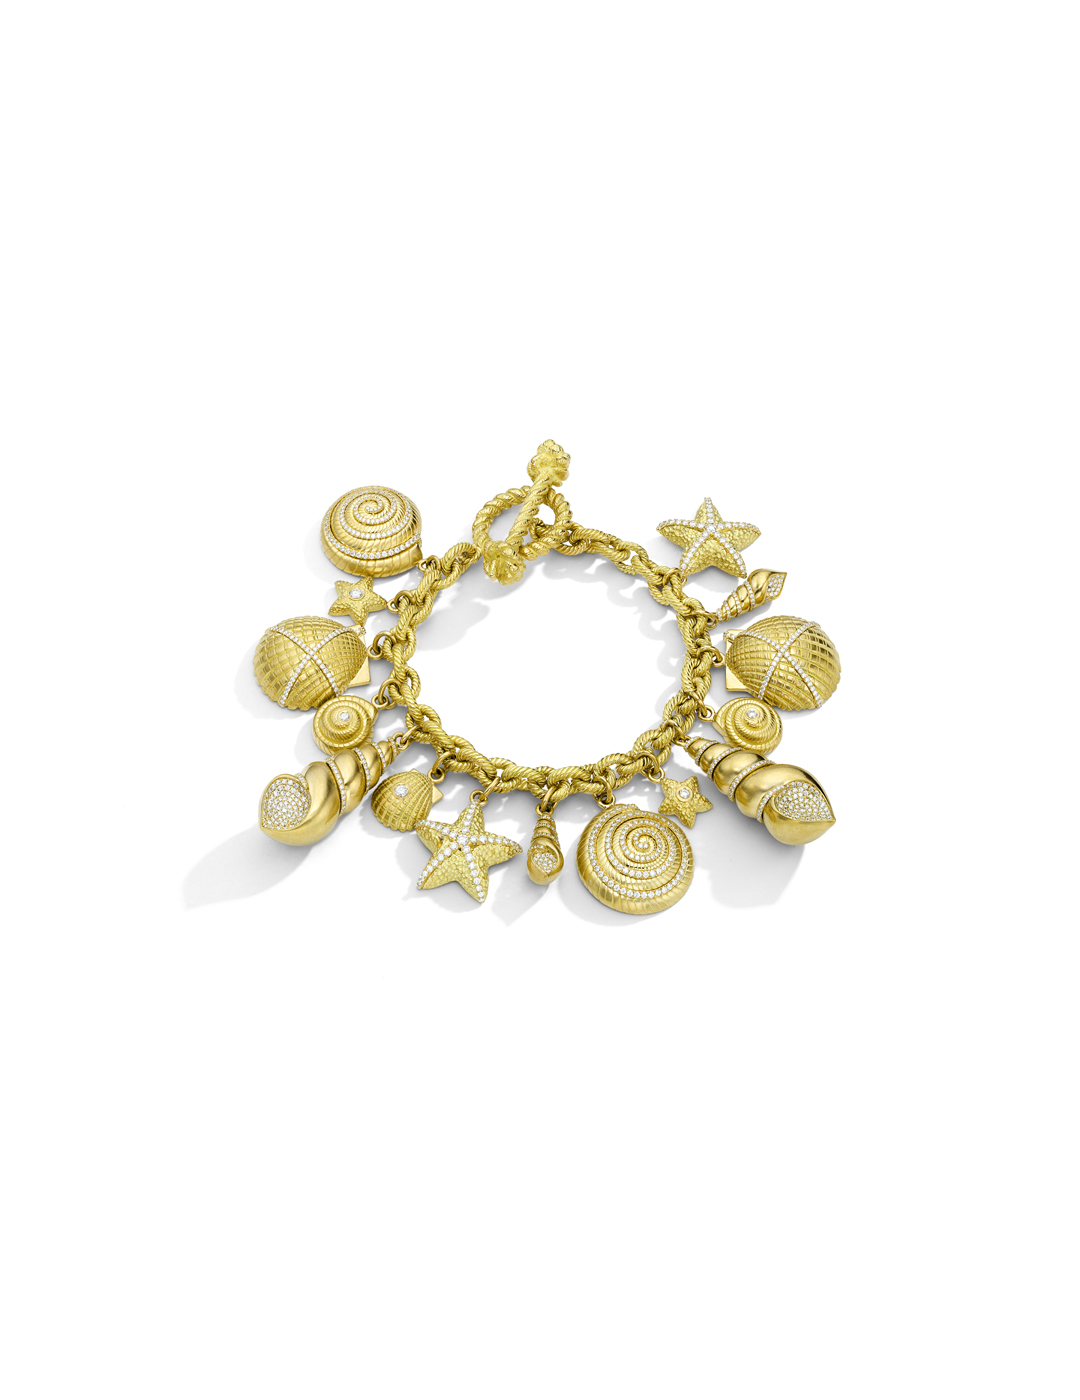 mish_jewelry_product_Cabana-Gld-Chrm-BR-1